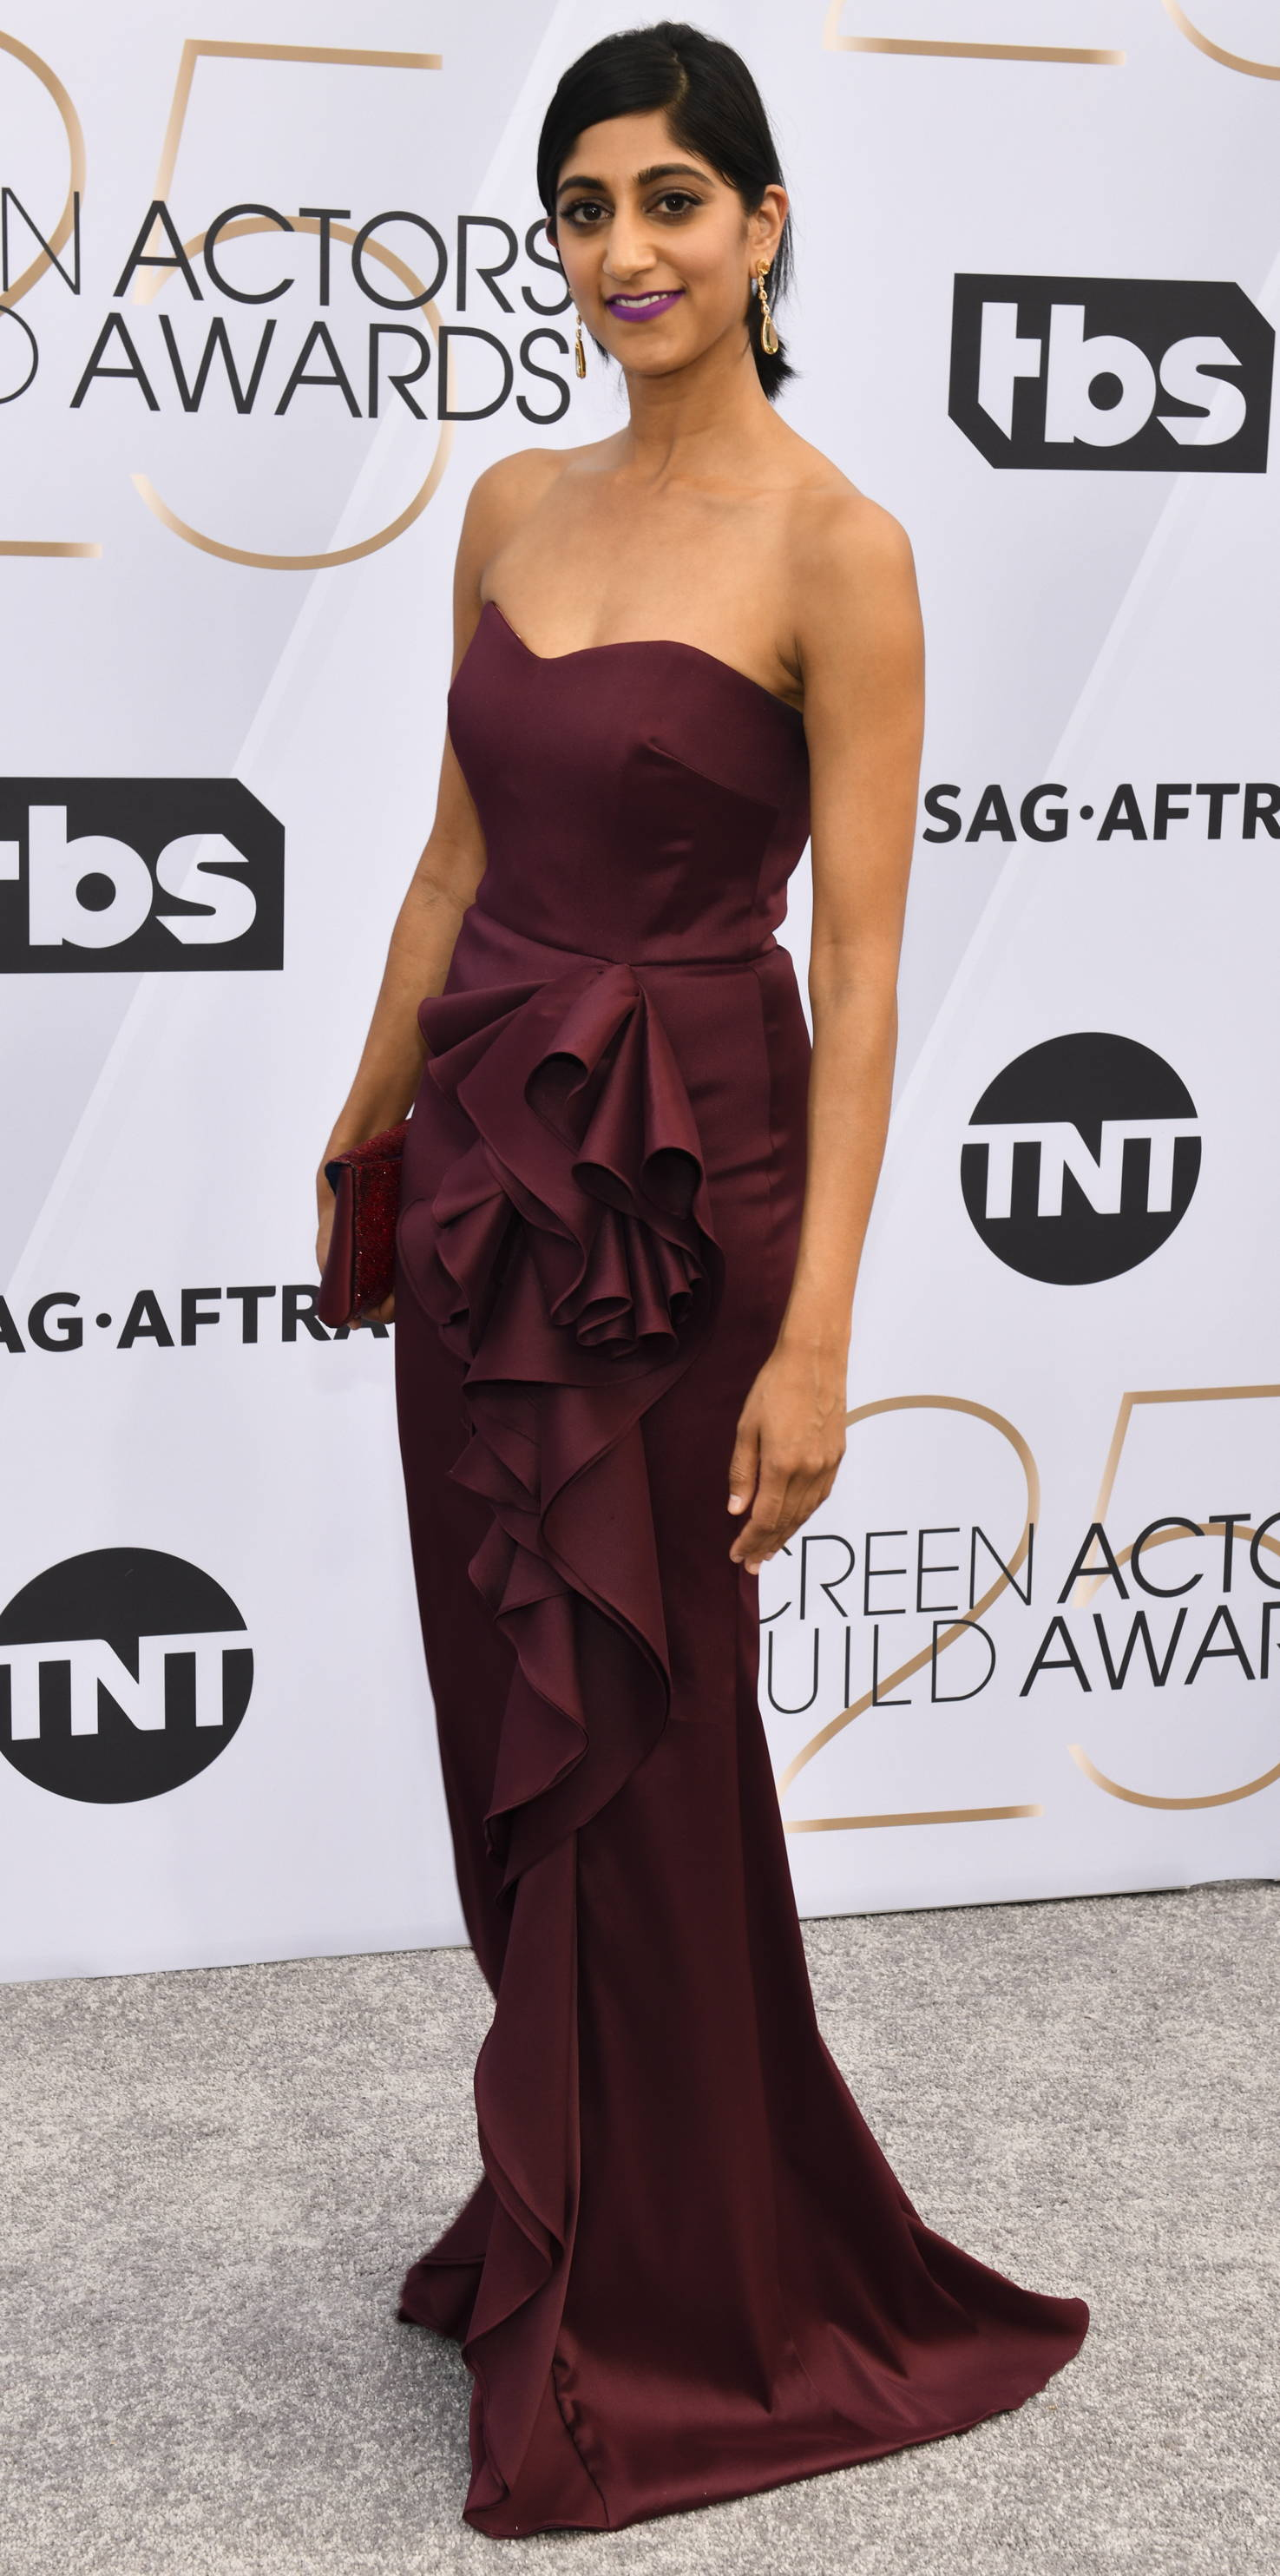 Sunita Mani, member of the SAG-nominated cast of glow looked gorgeous in badgley mischka at the screen actors guild awards.